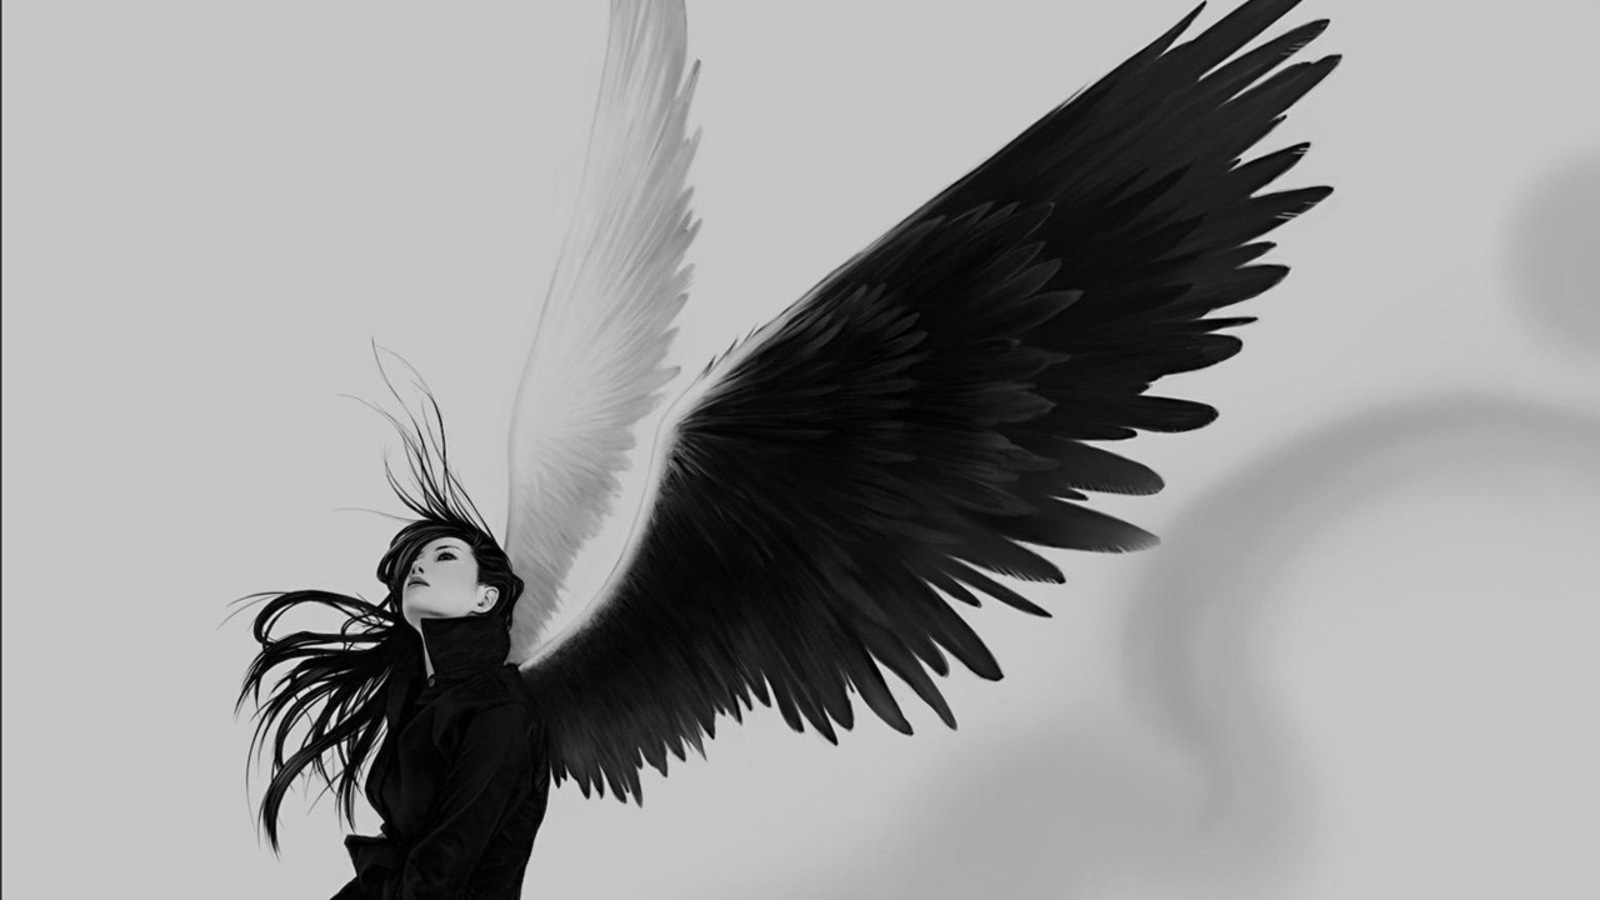 Angel 3D Abstract Angel Fantasy Wings 2536 Hd Wallpapers 1600x900